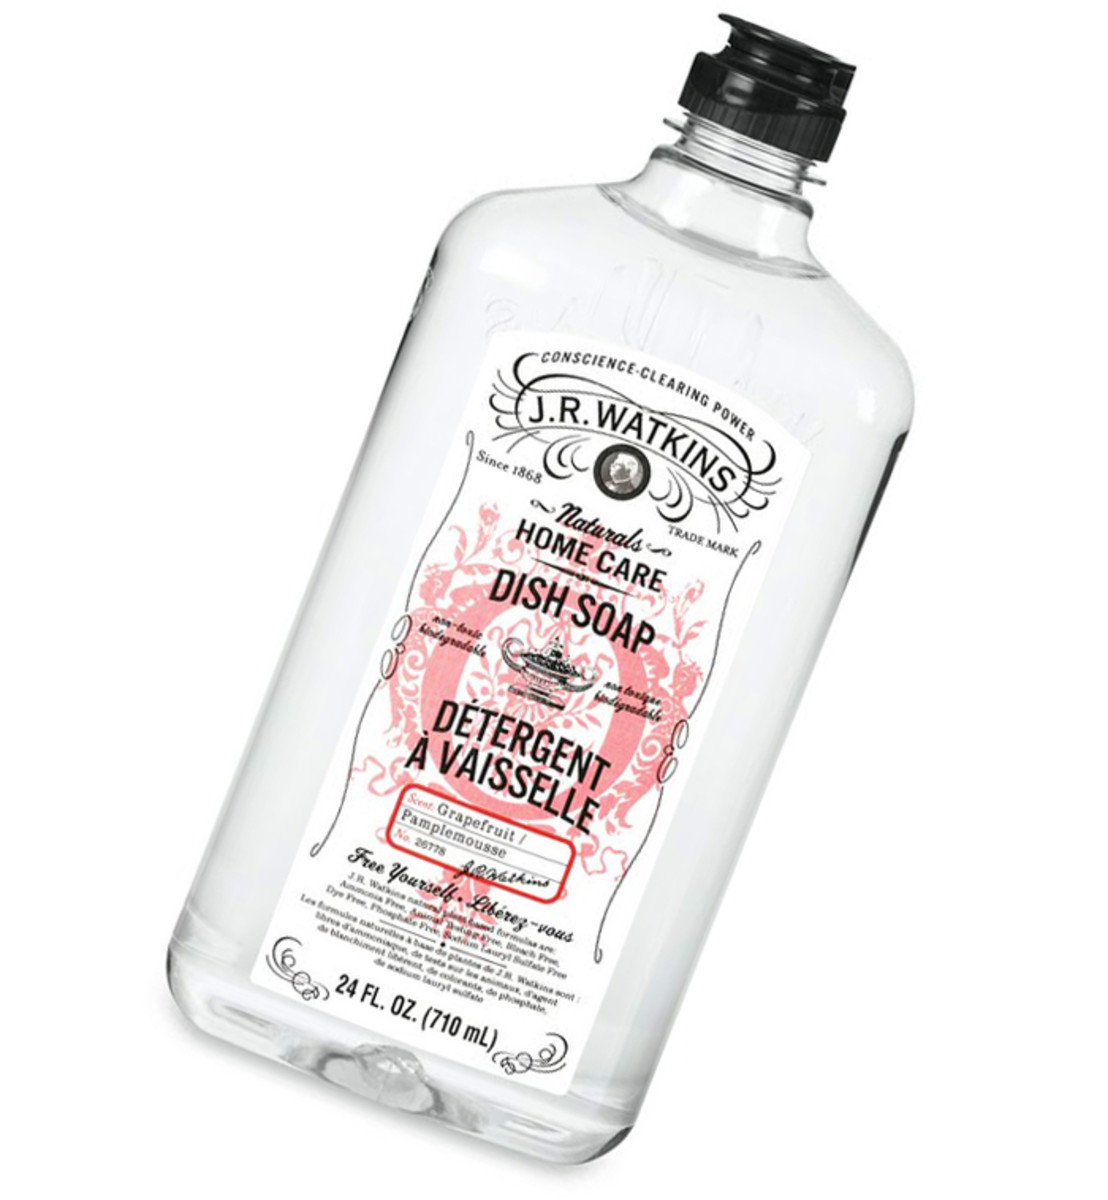 JR Watkins Dish Soap in Grapefruit scent